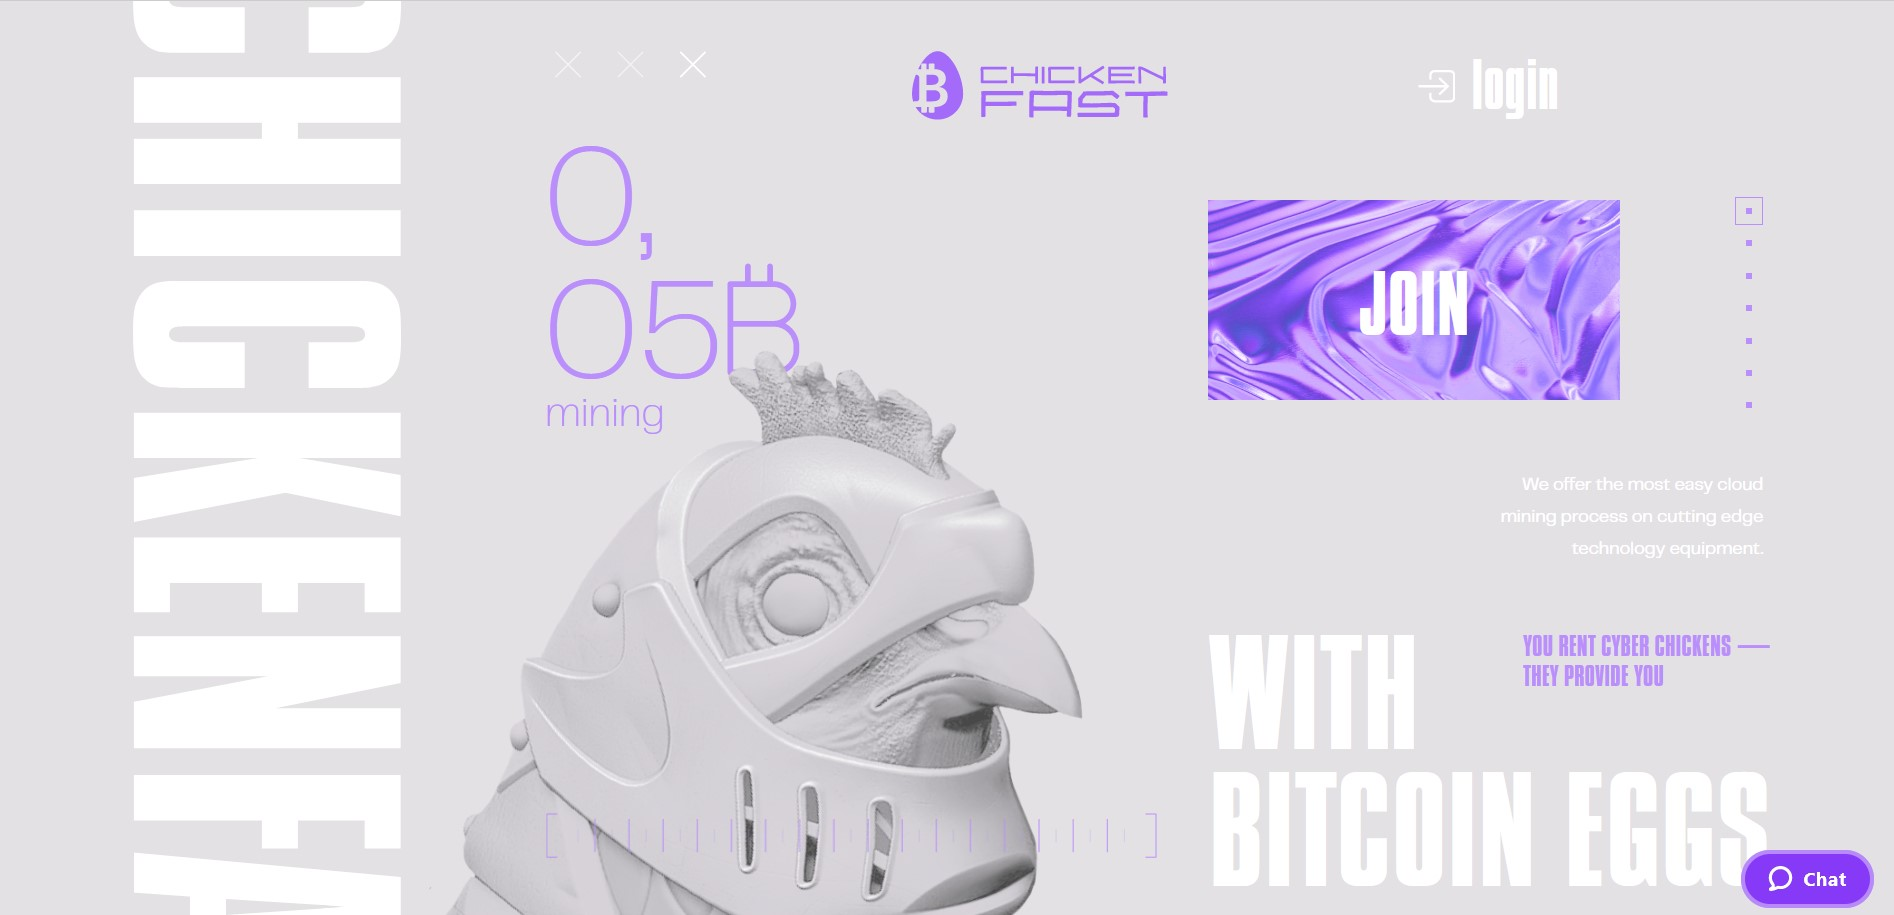 CHICKENFAST.com - New Generation of Cloud Mining Systems